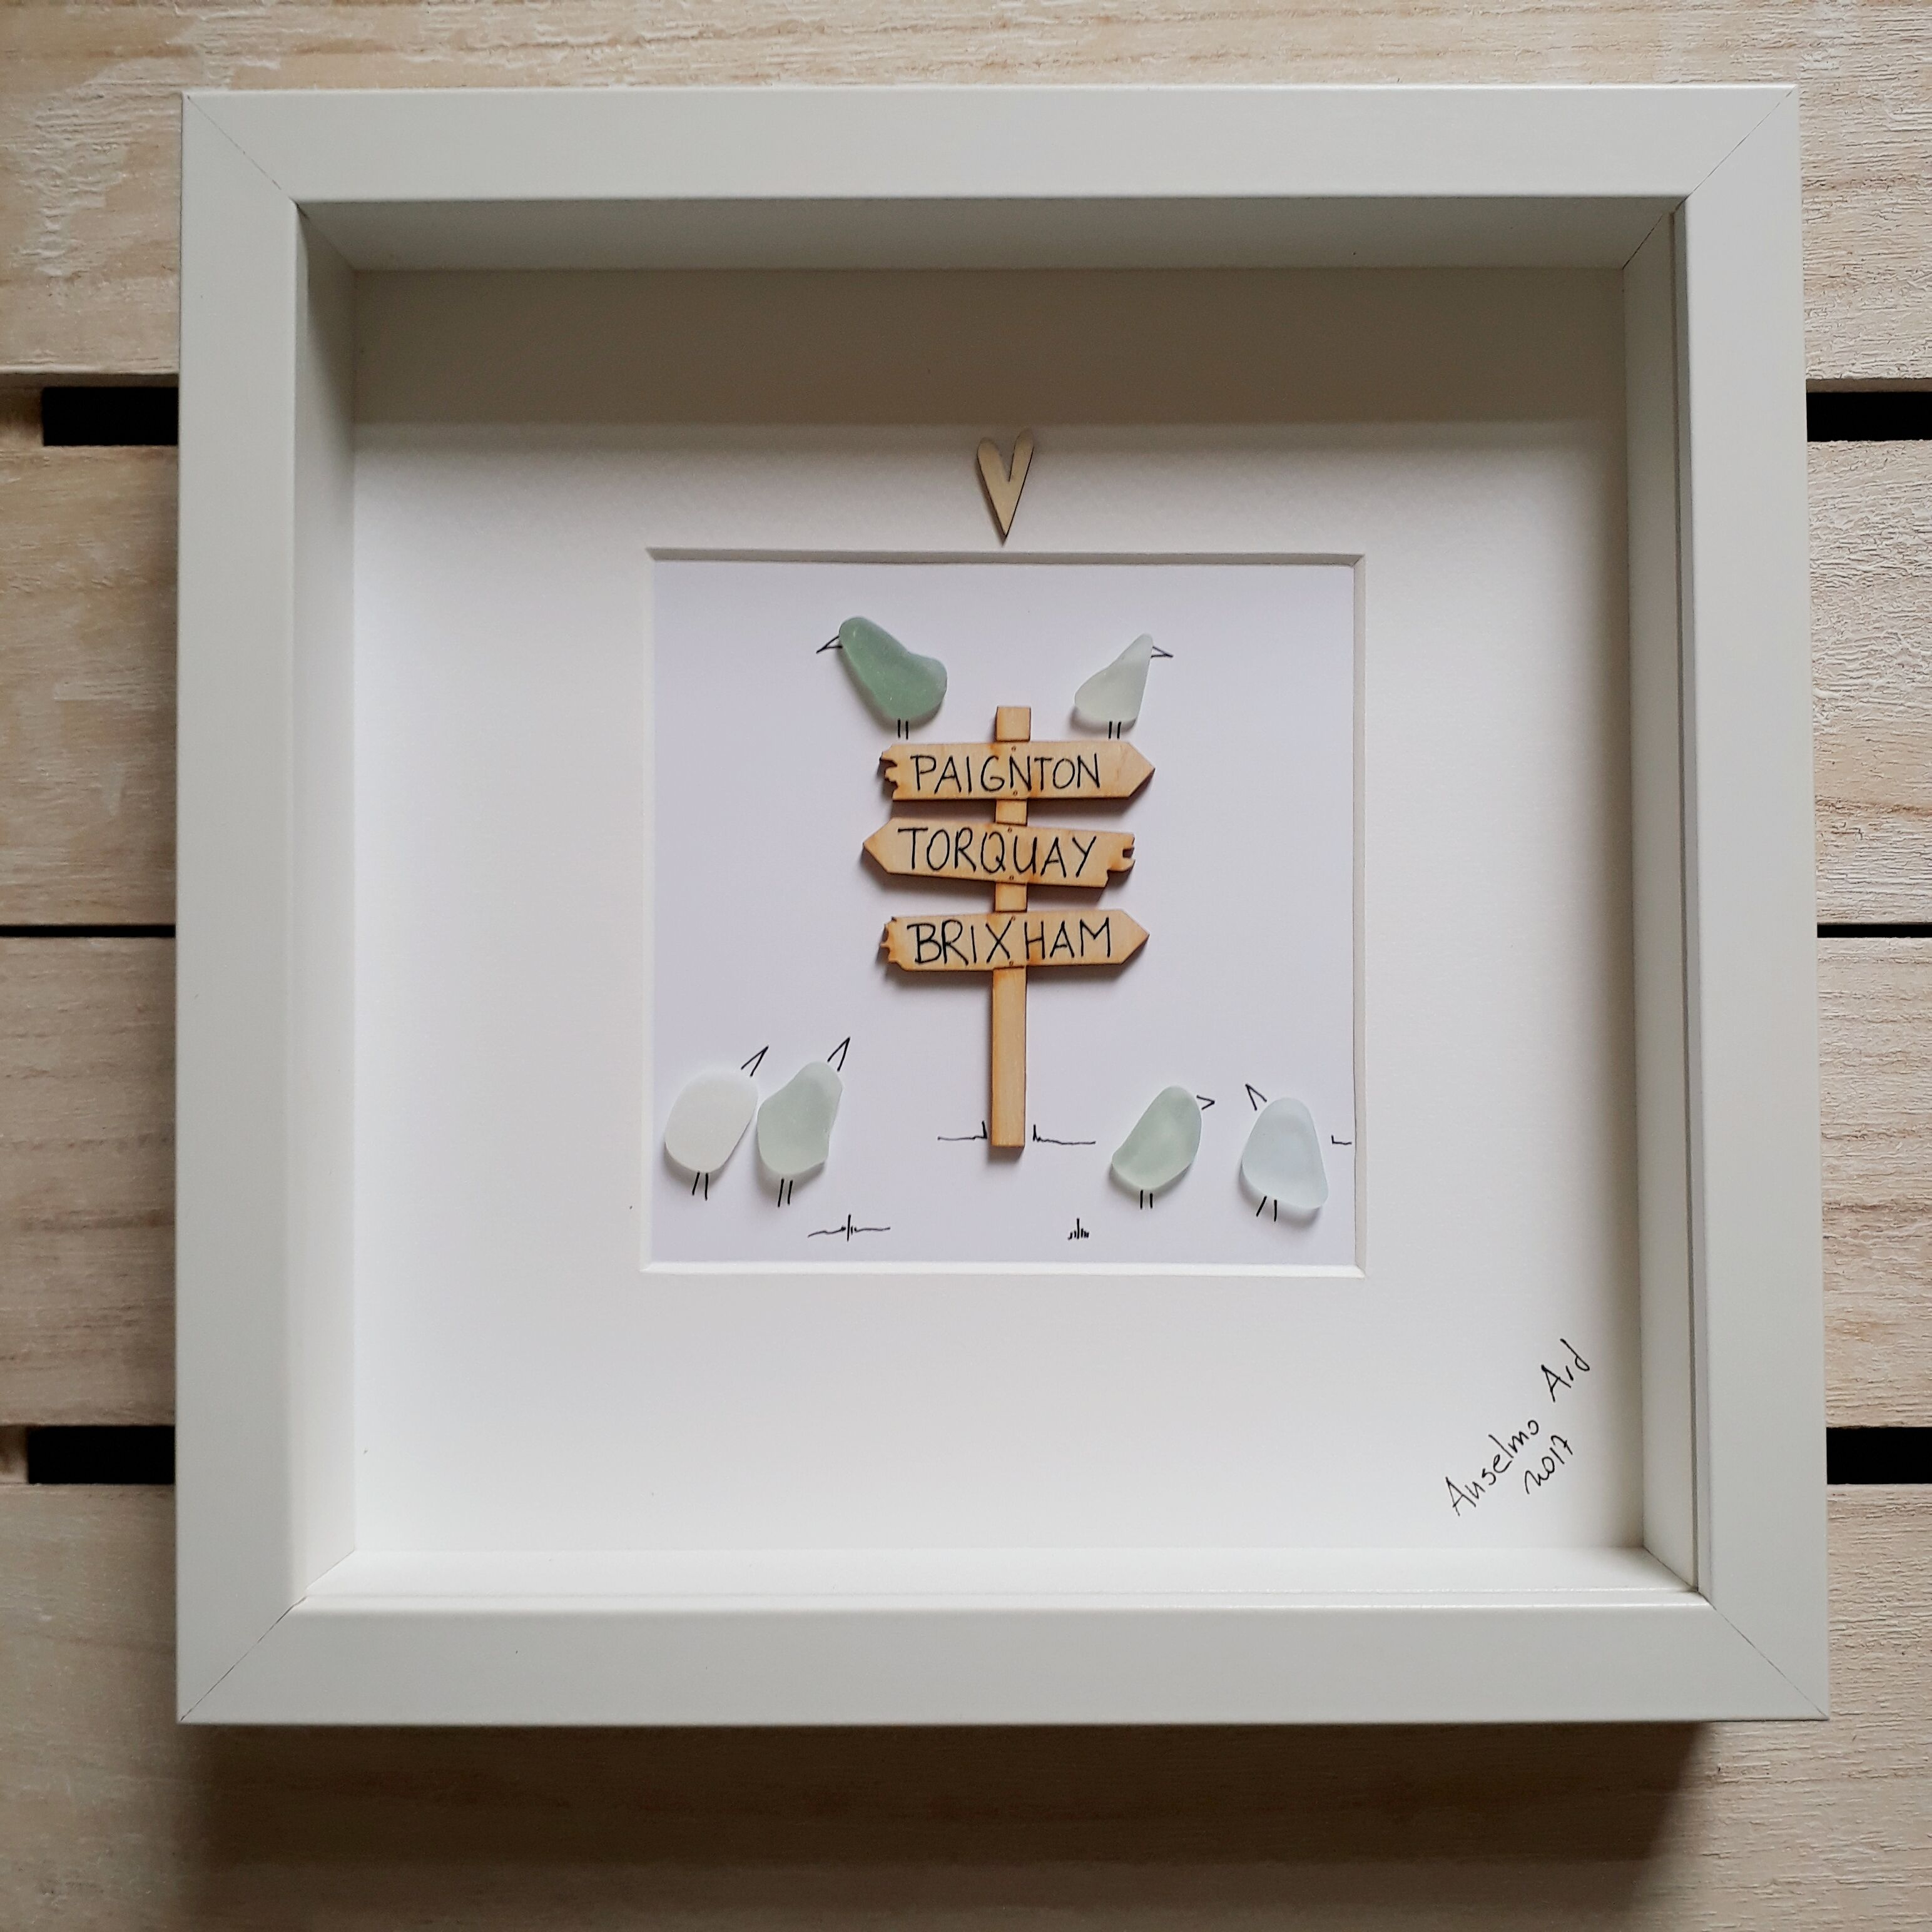 Sea glass picture, sea glass birds, framed picture, signpost ...